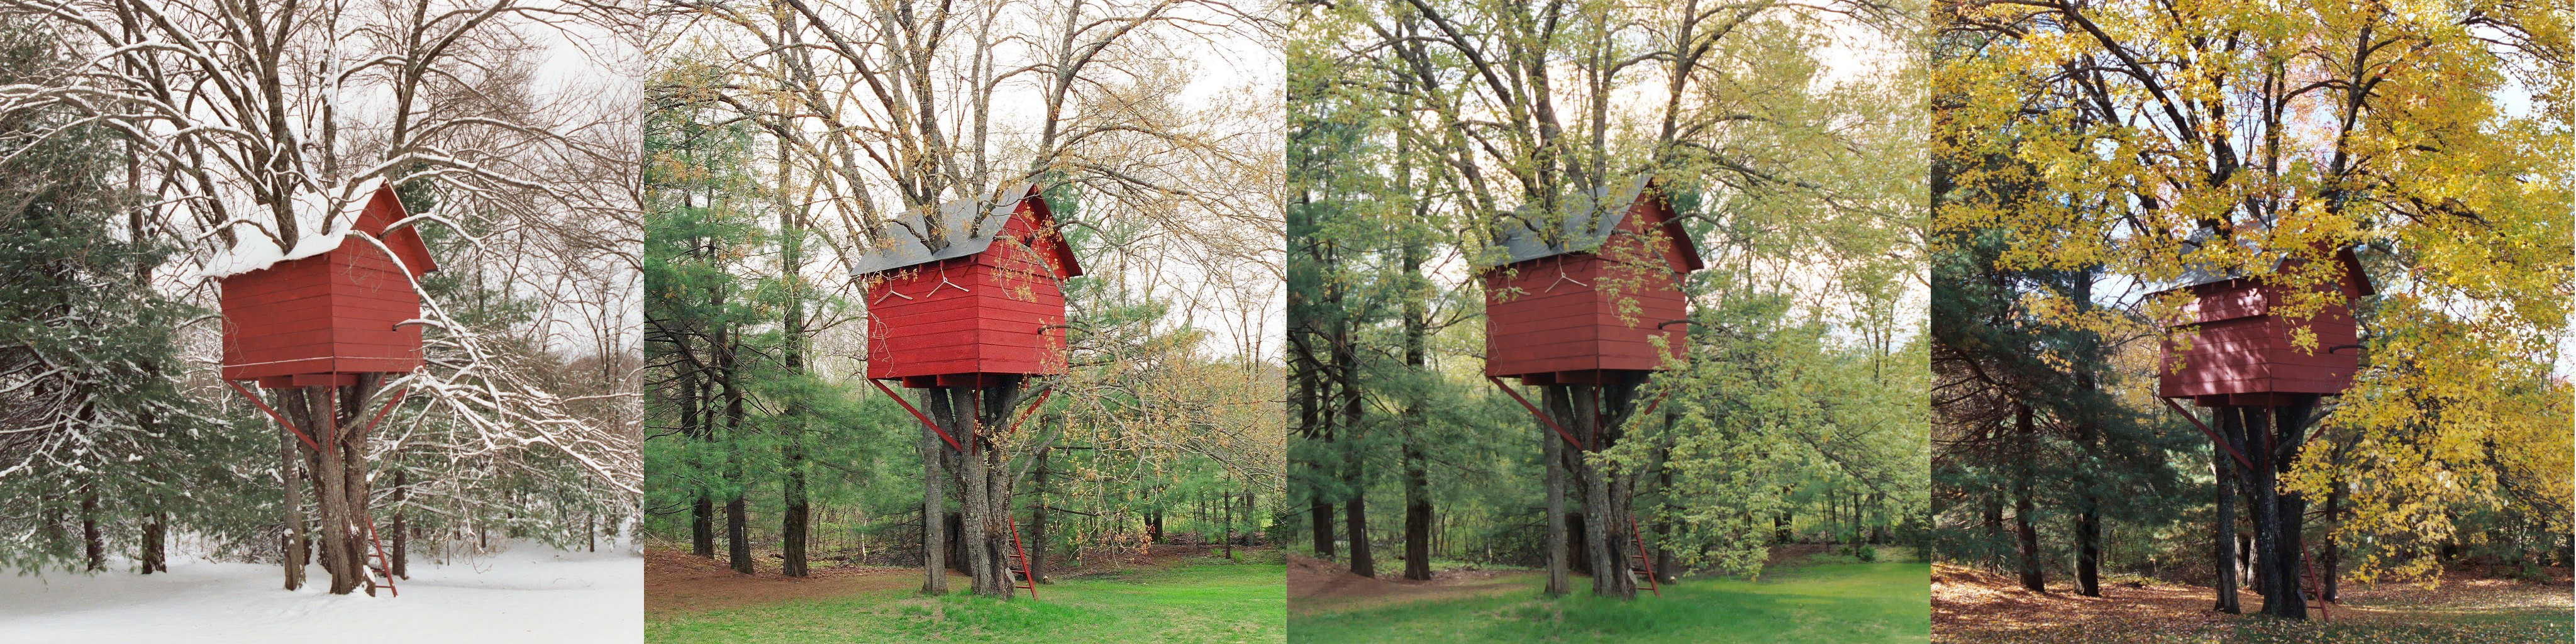 In the summers of 2003 and 2004, the perfect treehouse took shape in a four-stem maple in the back yard of a house in Acton, MA. The treehouse was built by Erik J. Heels and his three children: Sam, Ben, and Sonja. Shown here in all four seasons: winter, spring, summer, fall.